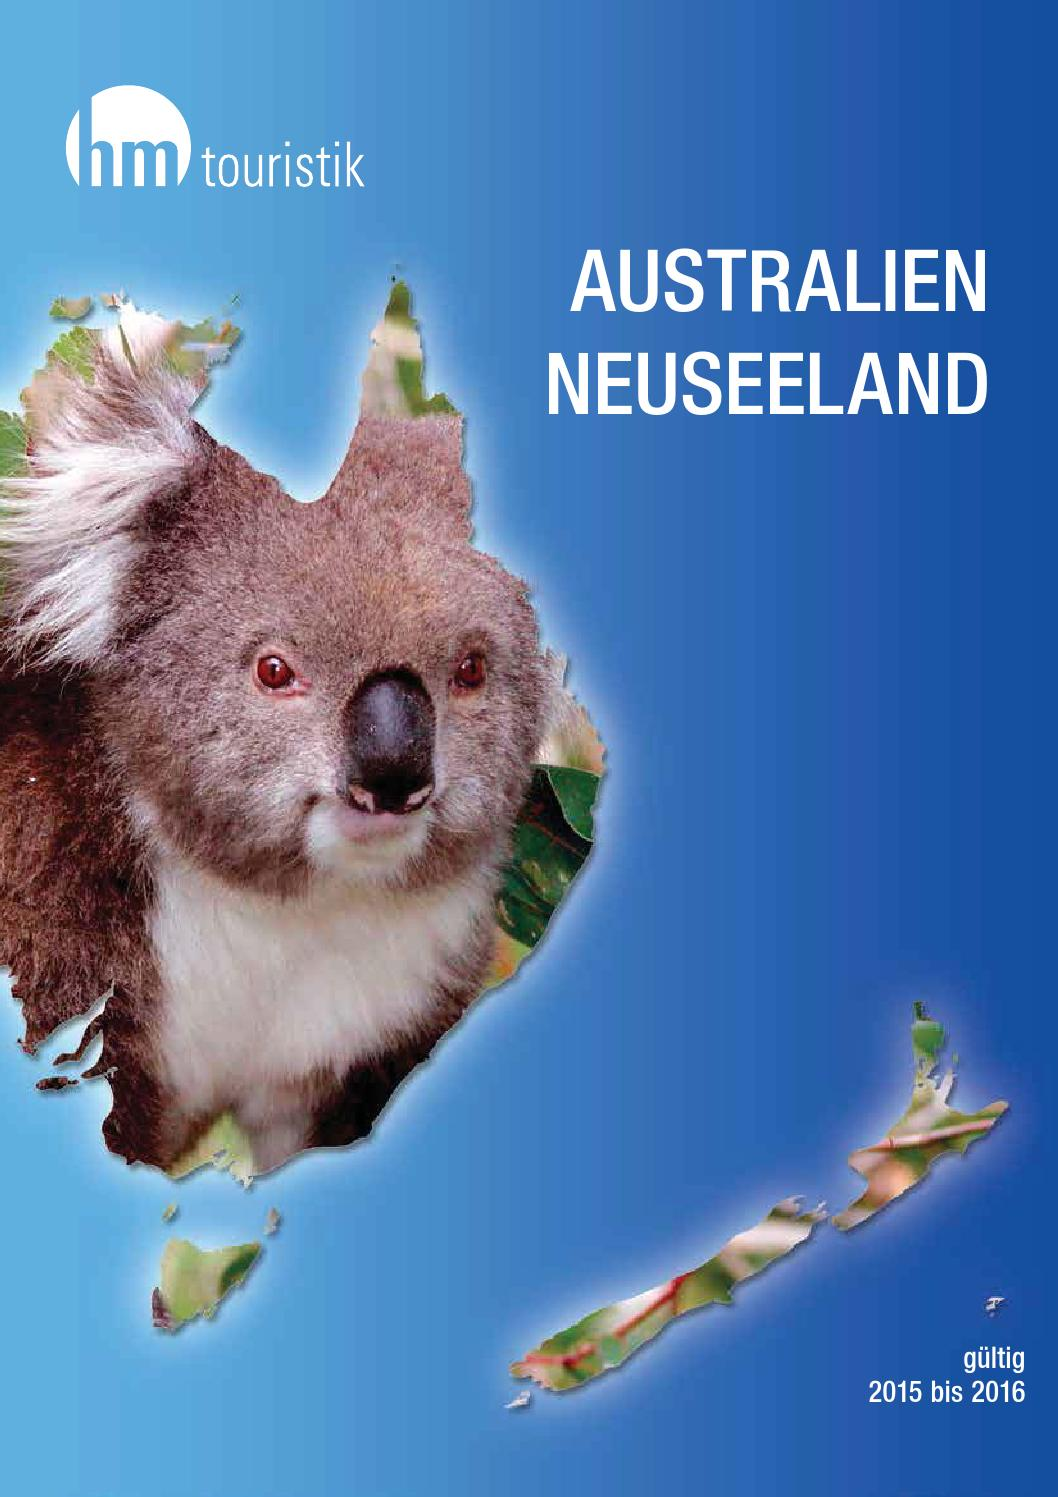 Destination Australia And New Zealand 2015 16 By Hm Touristik By Koolivoo Issuu